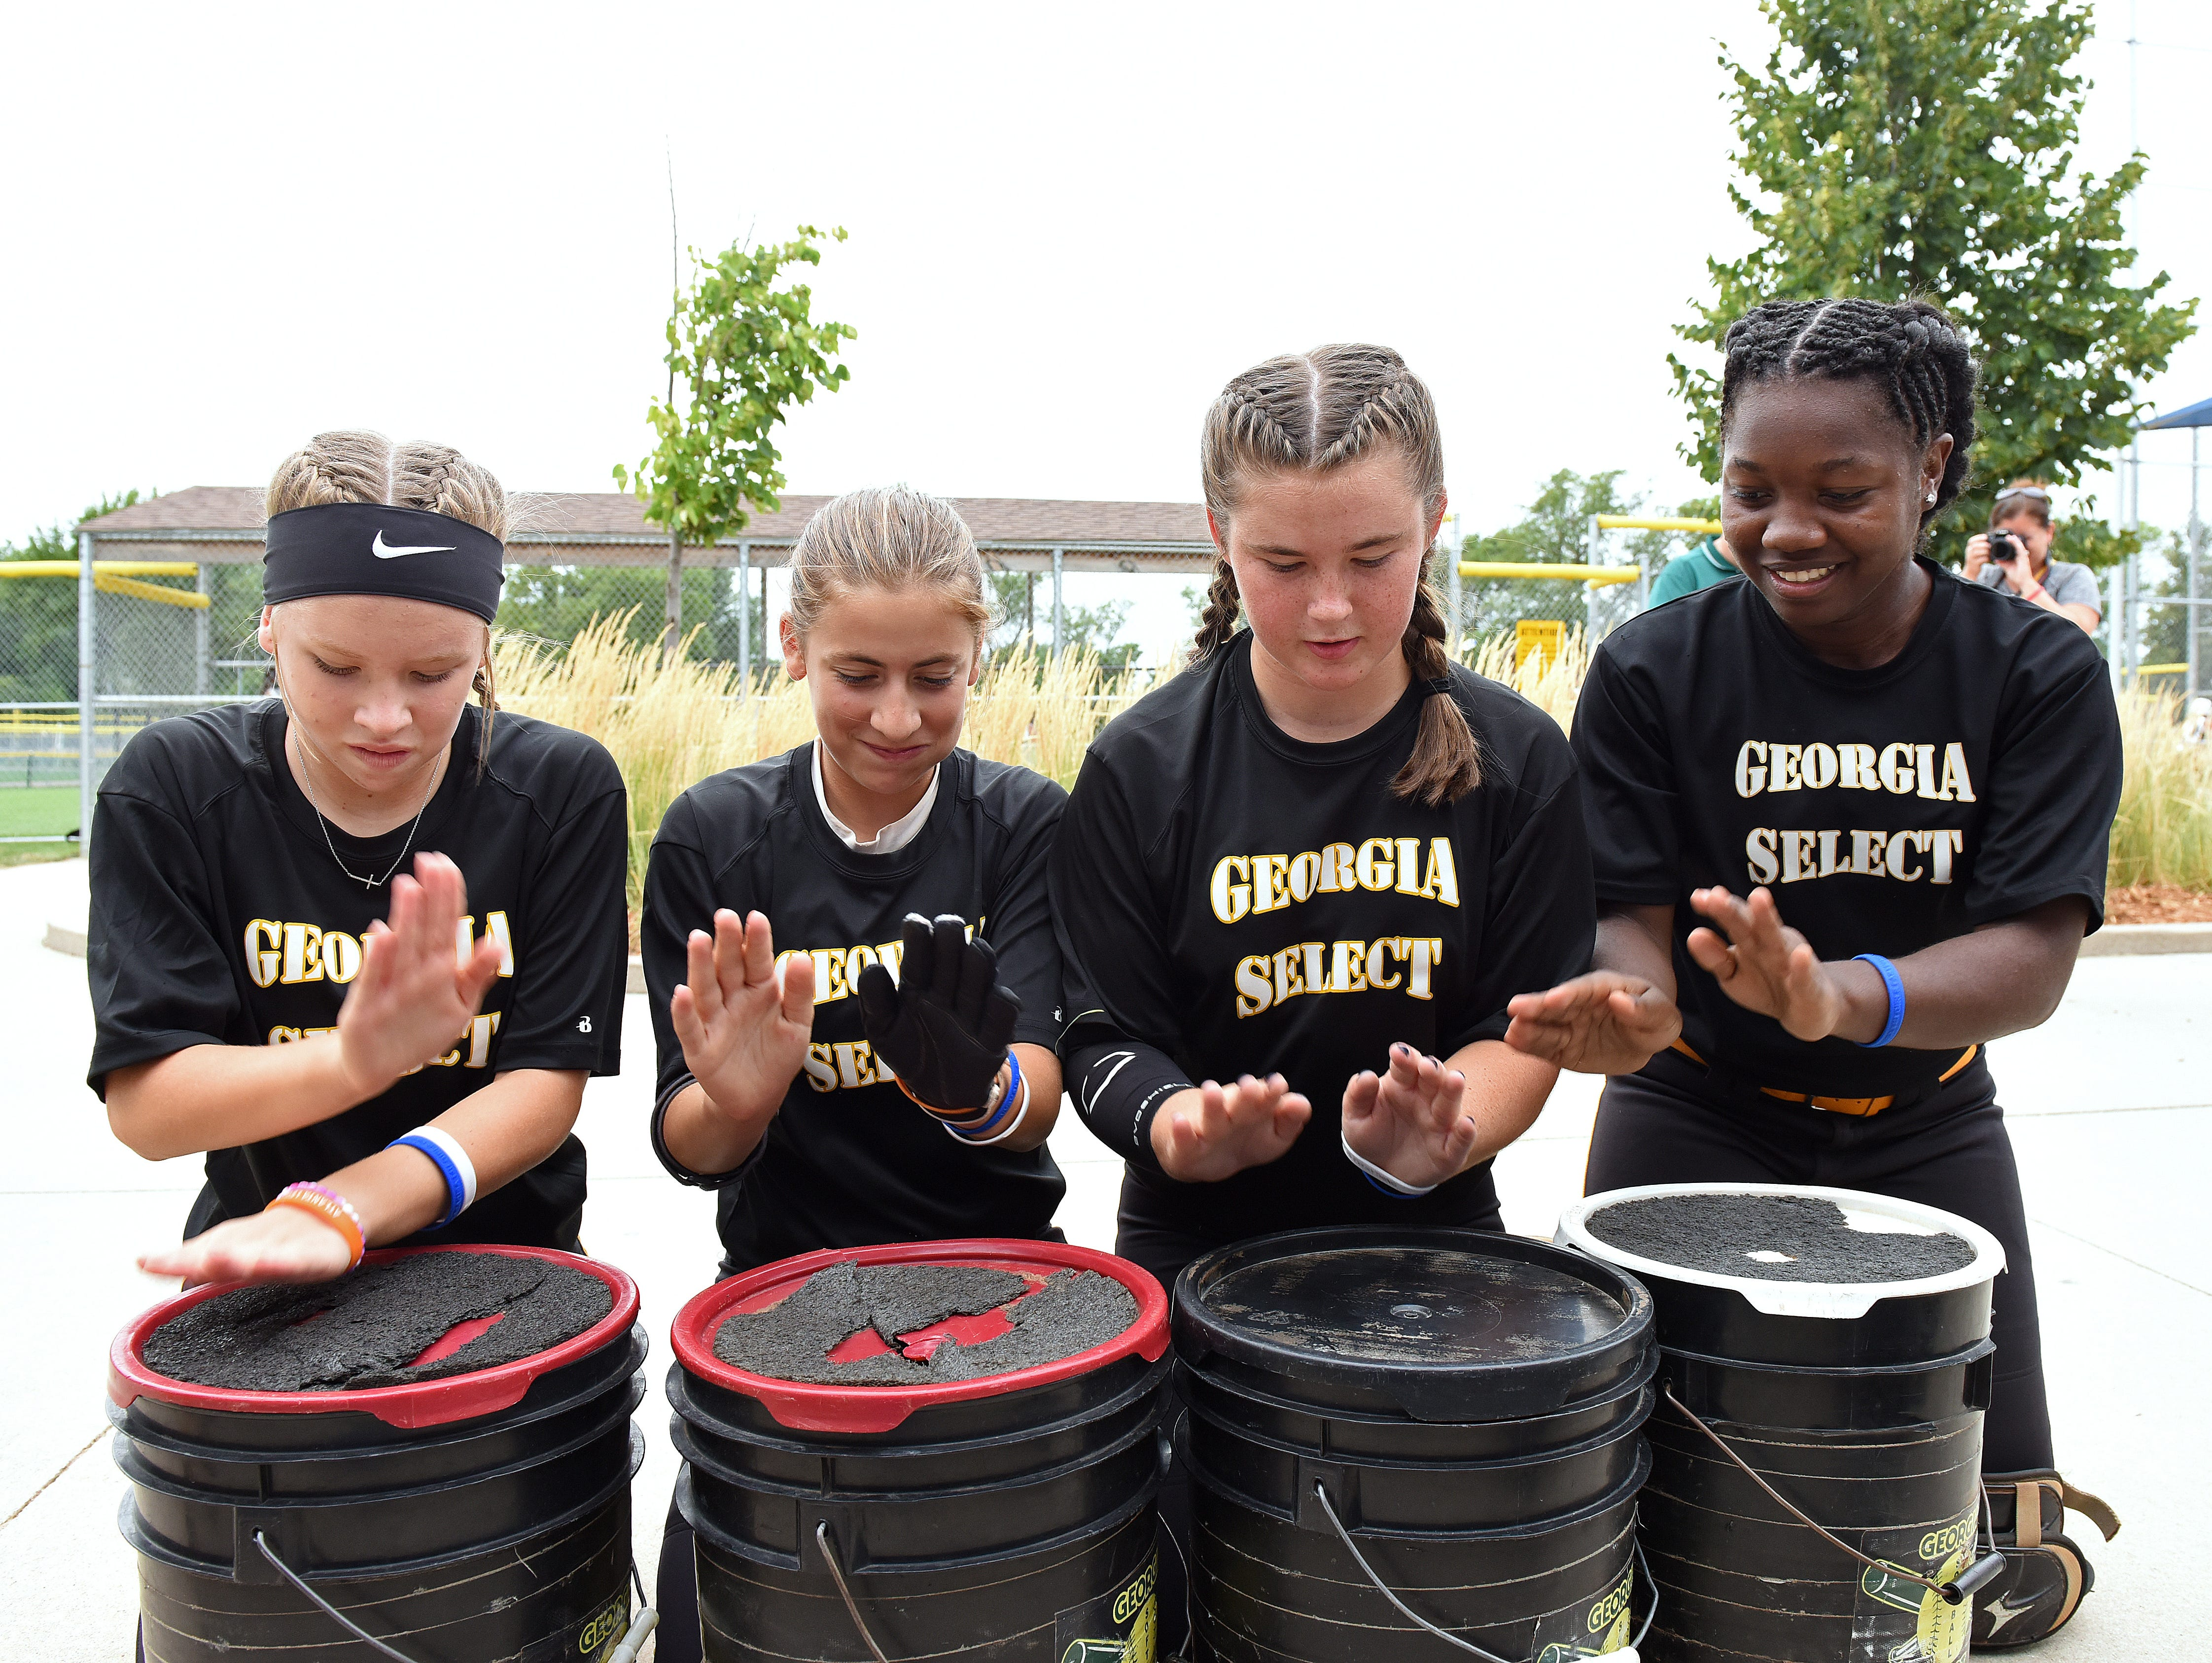 George Select's Skylar Berkhiser, Jenna Carpinello, Madyson Coe and Morgan Hall chant before they play during the ASA 14U national softball tournament at Sherman Park in Sioux Falls, S.D., Monday, Aug. 1, 2016.